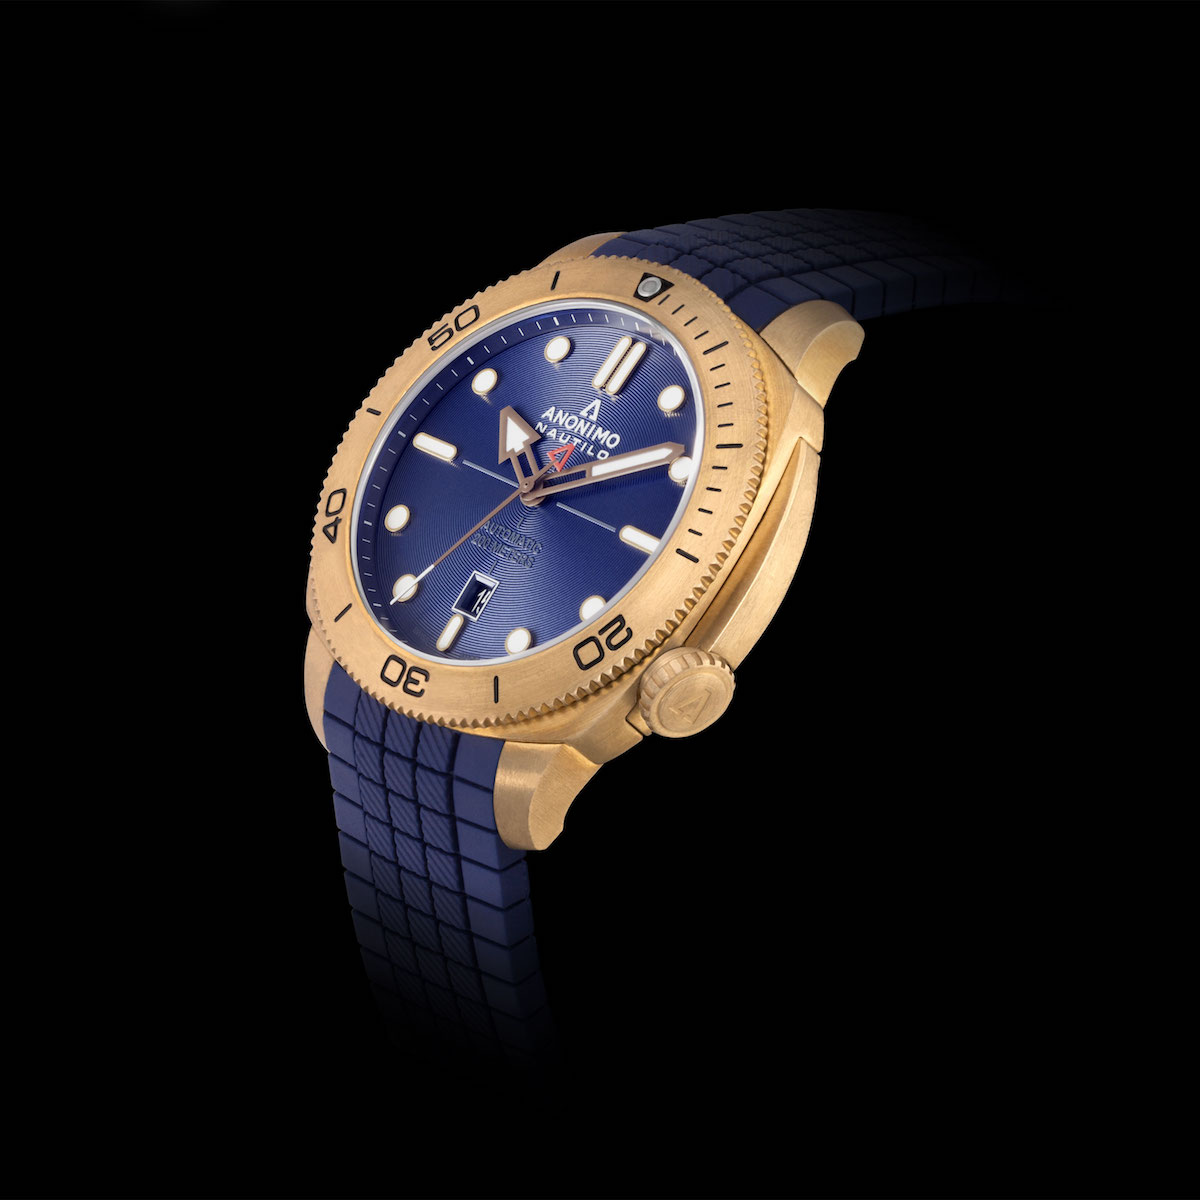 Anonimo Nautilo: Blue Works For You